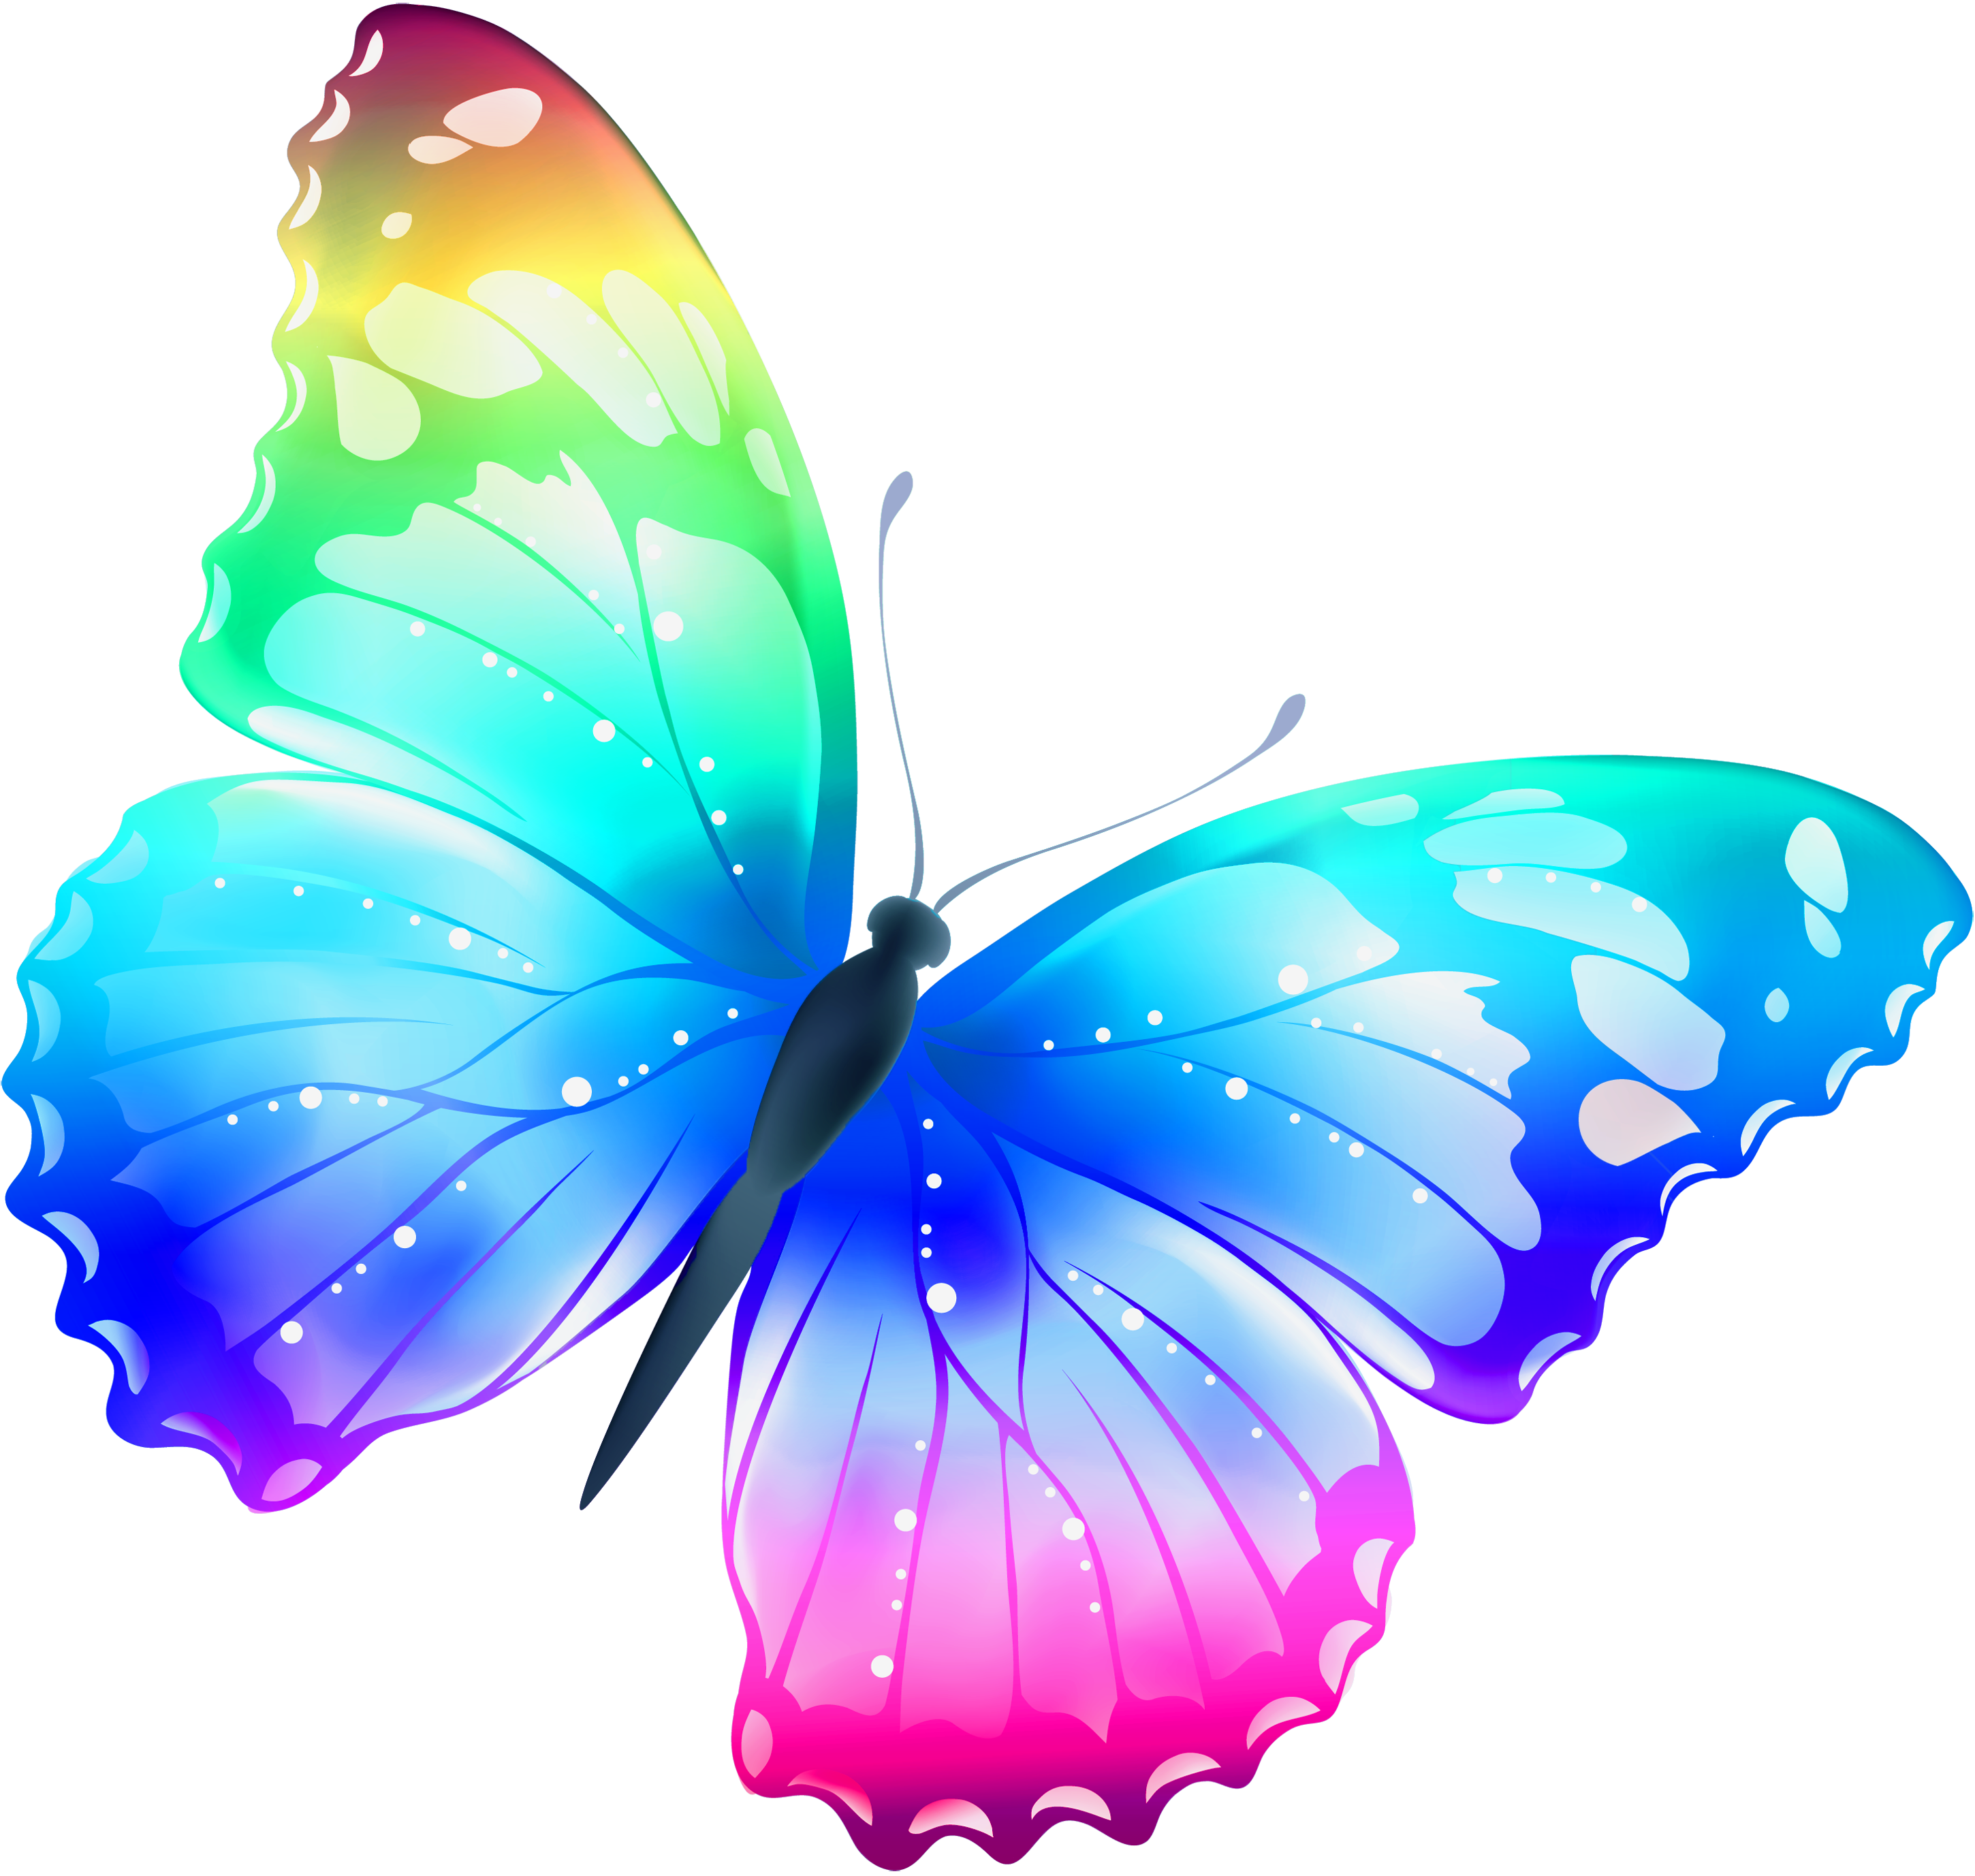 Worm clipart butterfly. Large transparent multi color